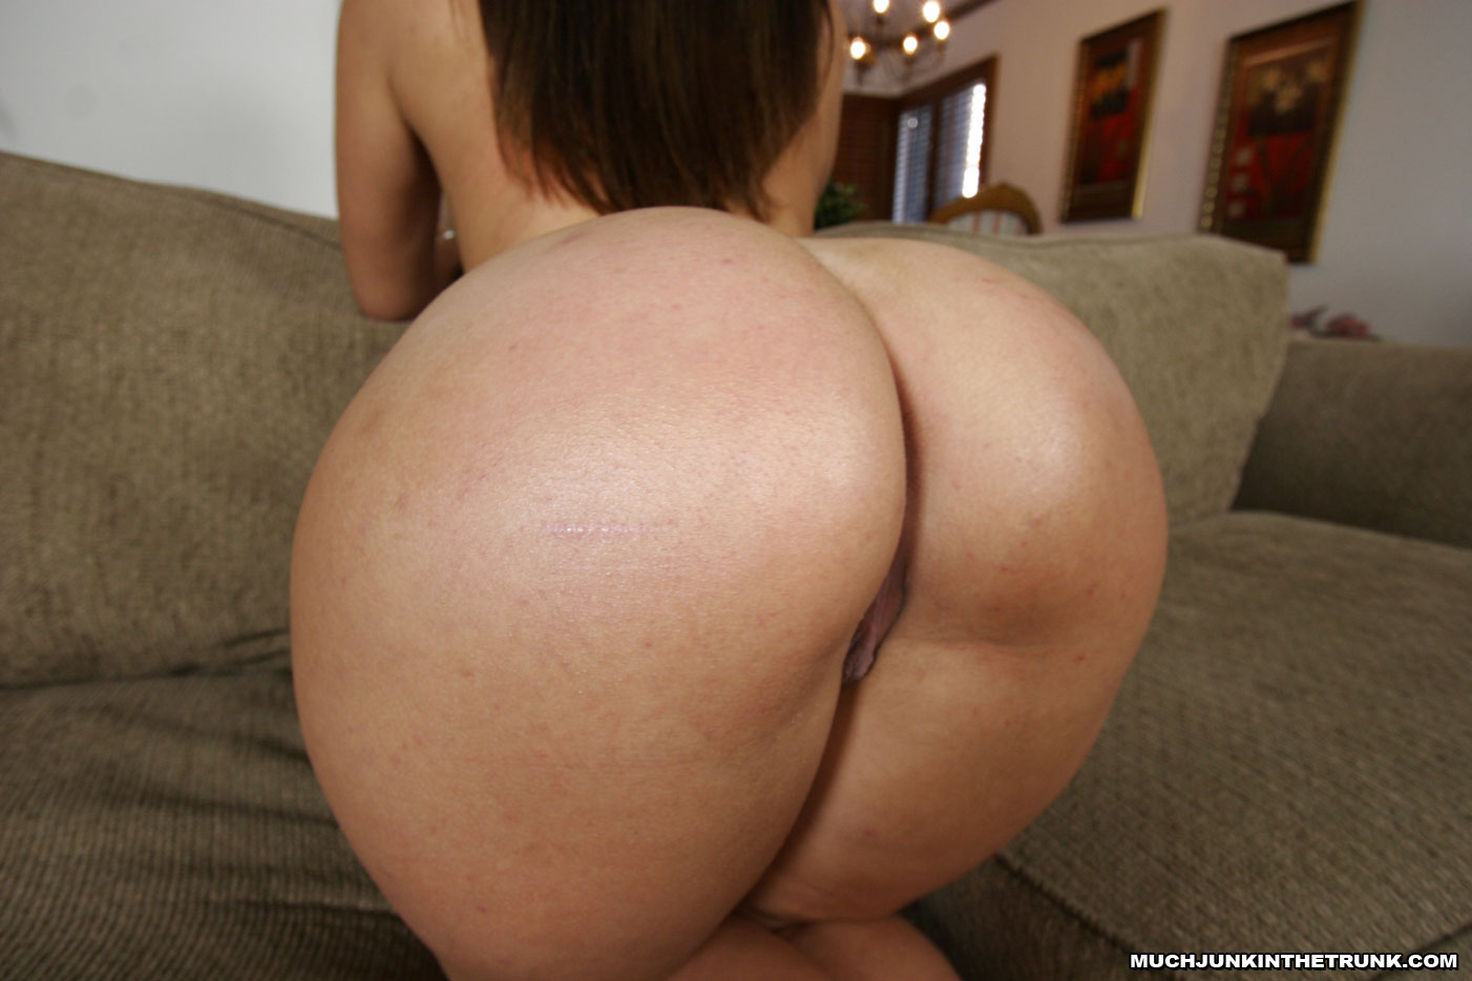 Big booty ass porn video